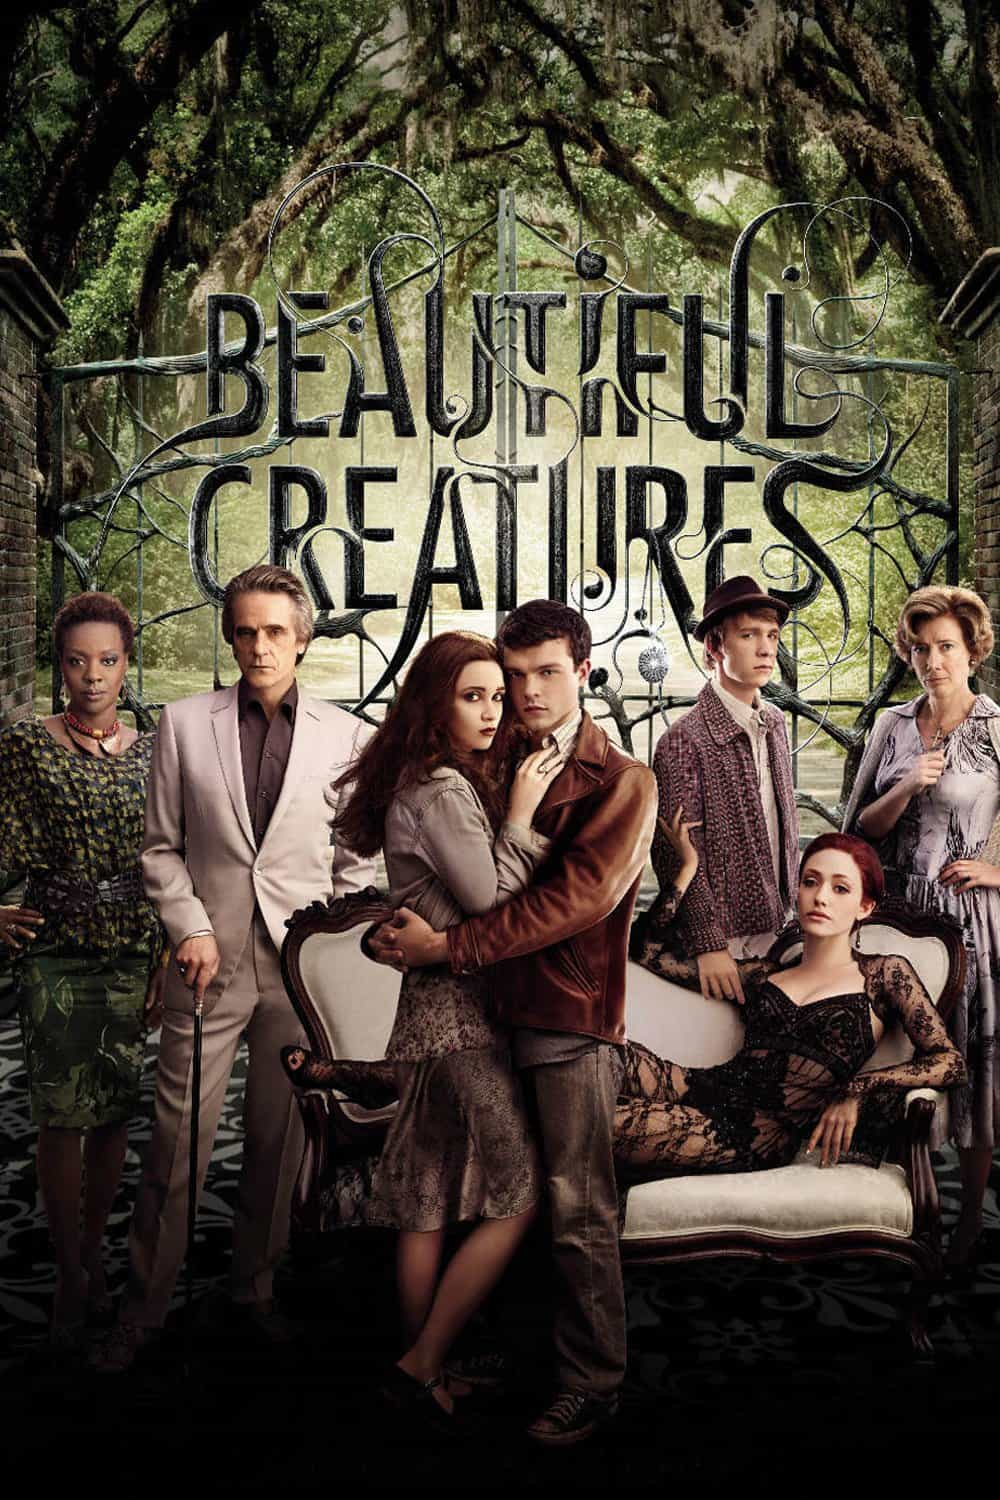 Beautiful Creatures, 2013